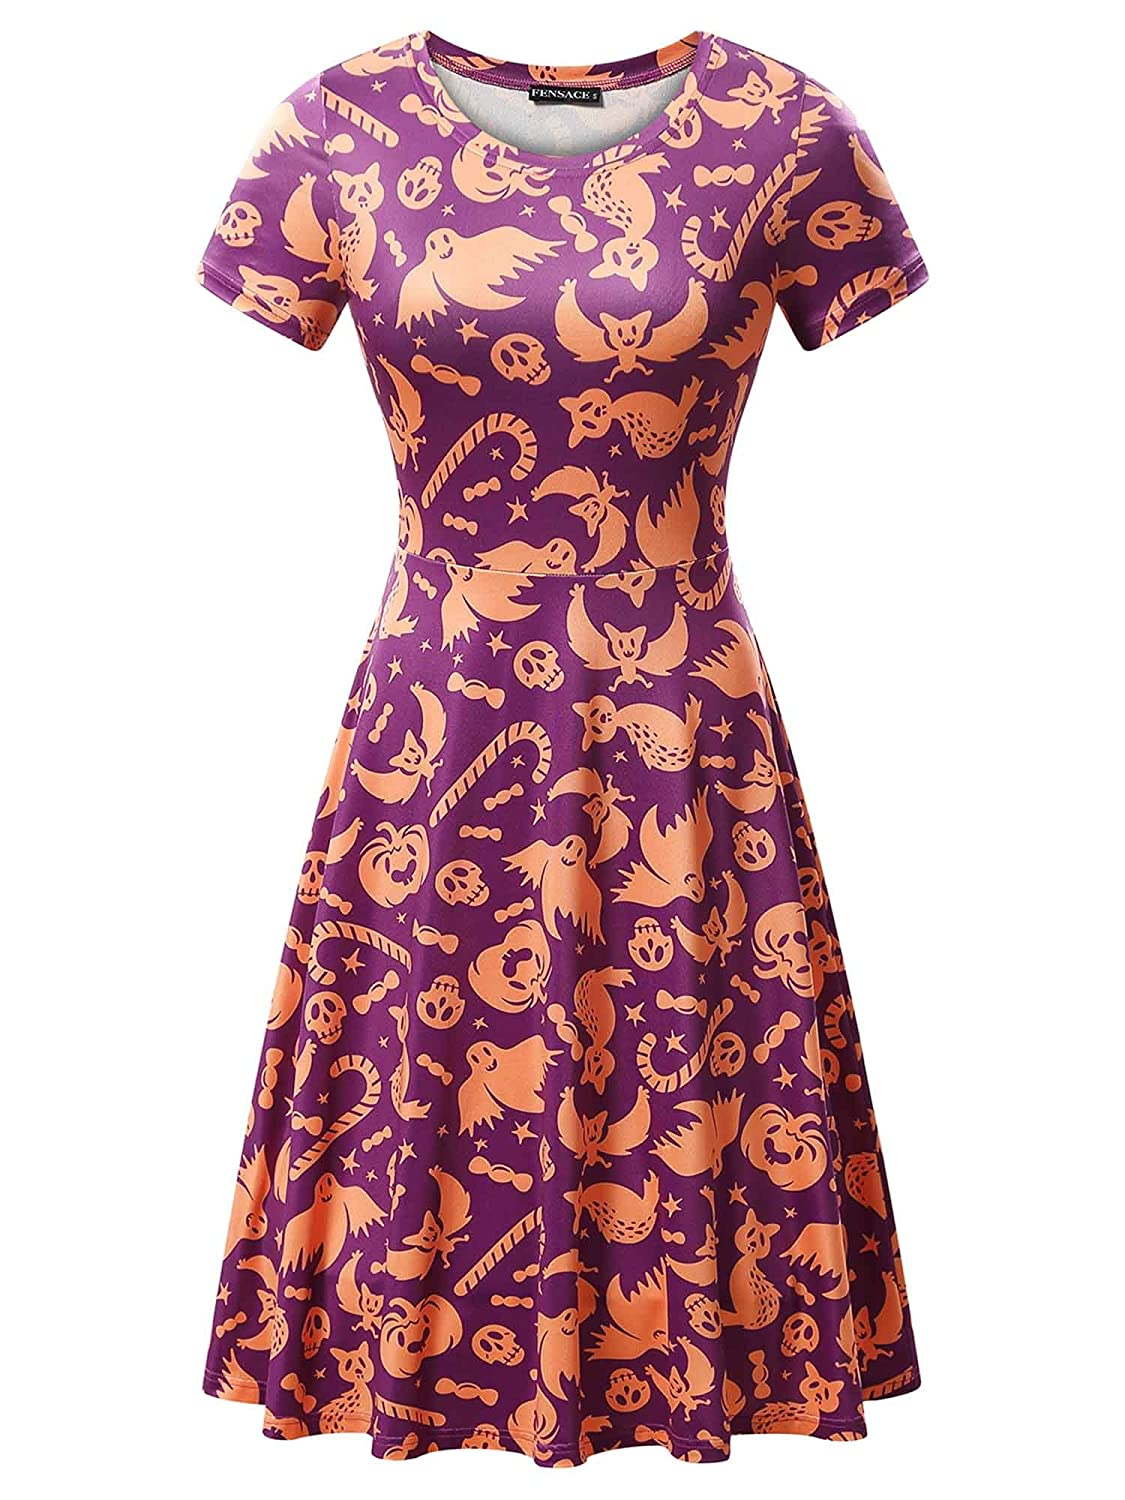 FENSACE Womens Short Sleeves Casual A-line Halloween Pumpkin Dress